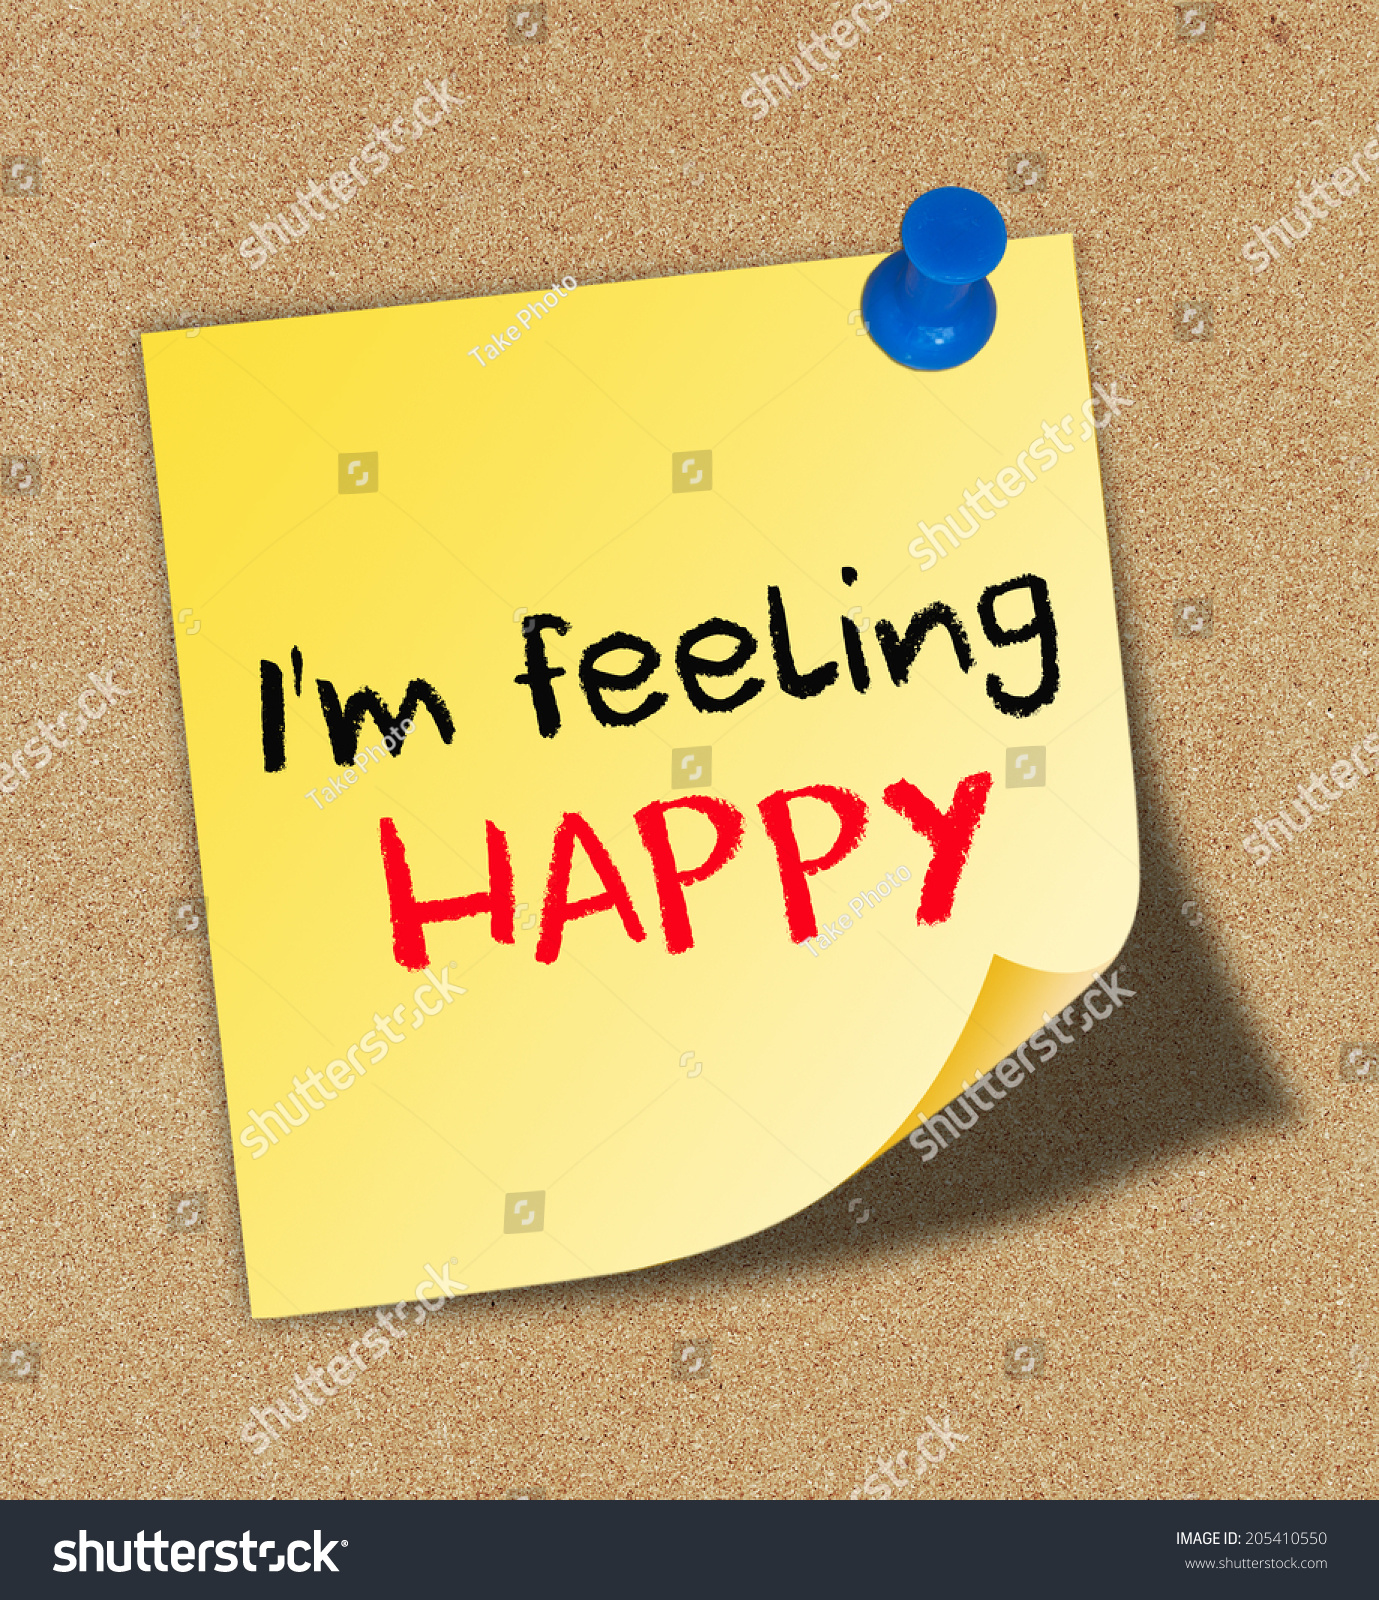 Im feeling happy written on yellow note pinned on cork board